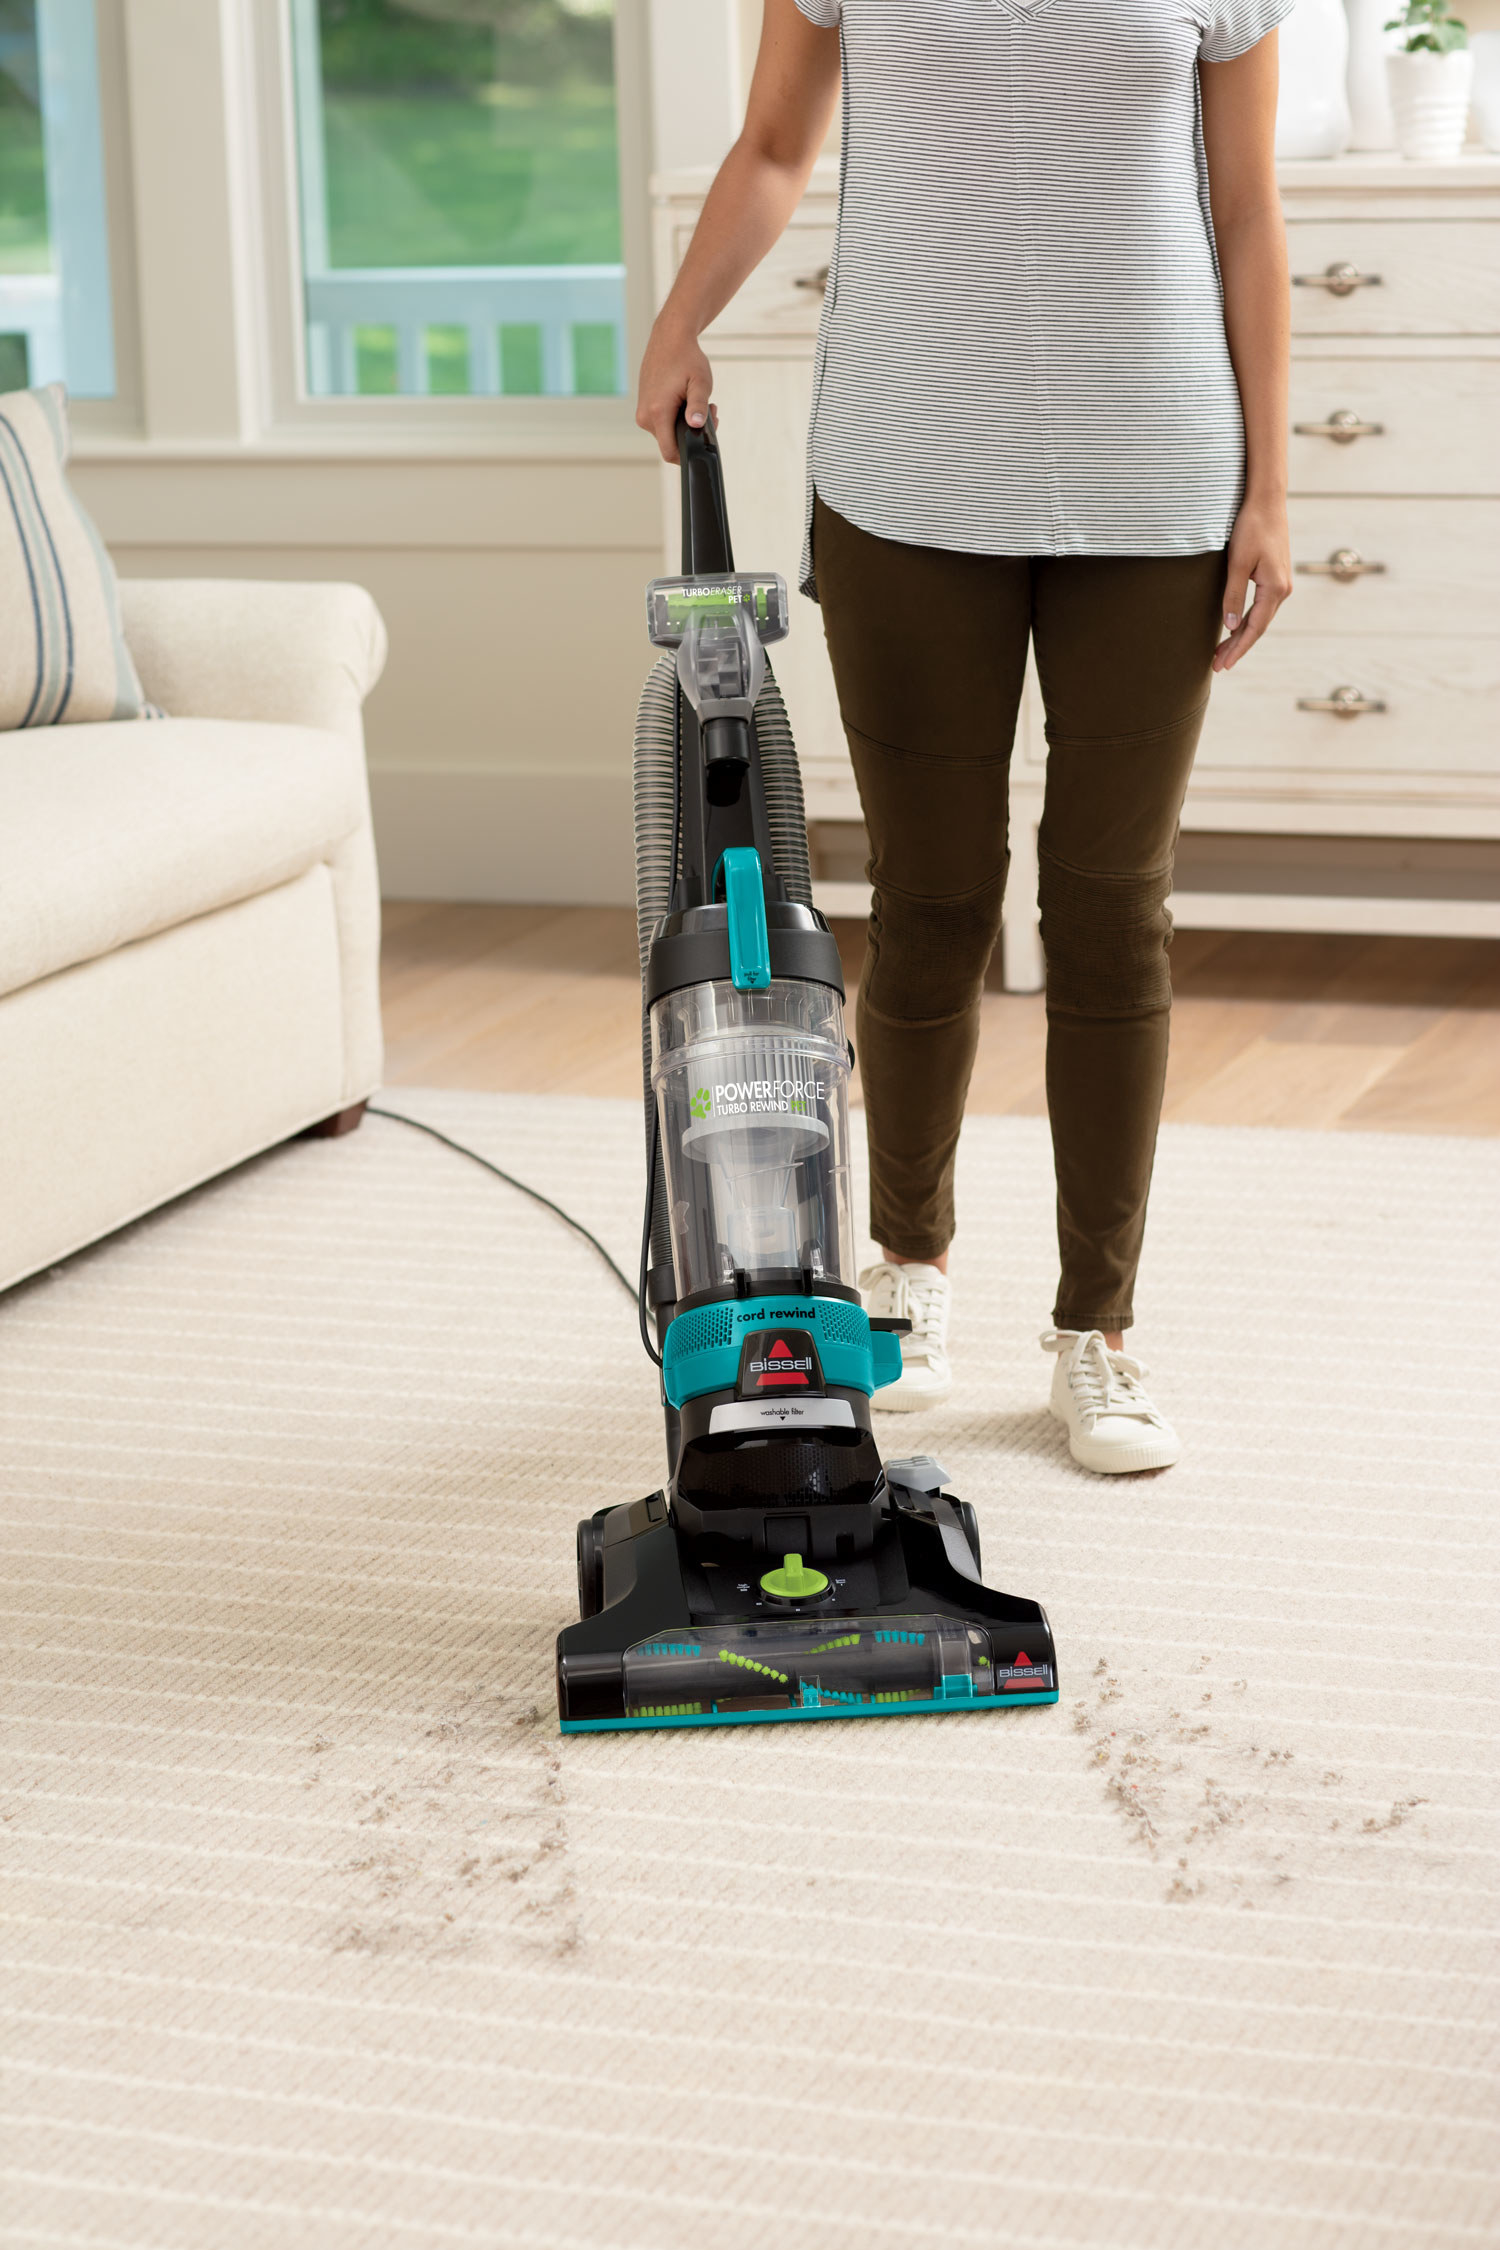 person using a bissell pet vacuum to suck up pet hair on the rug